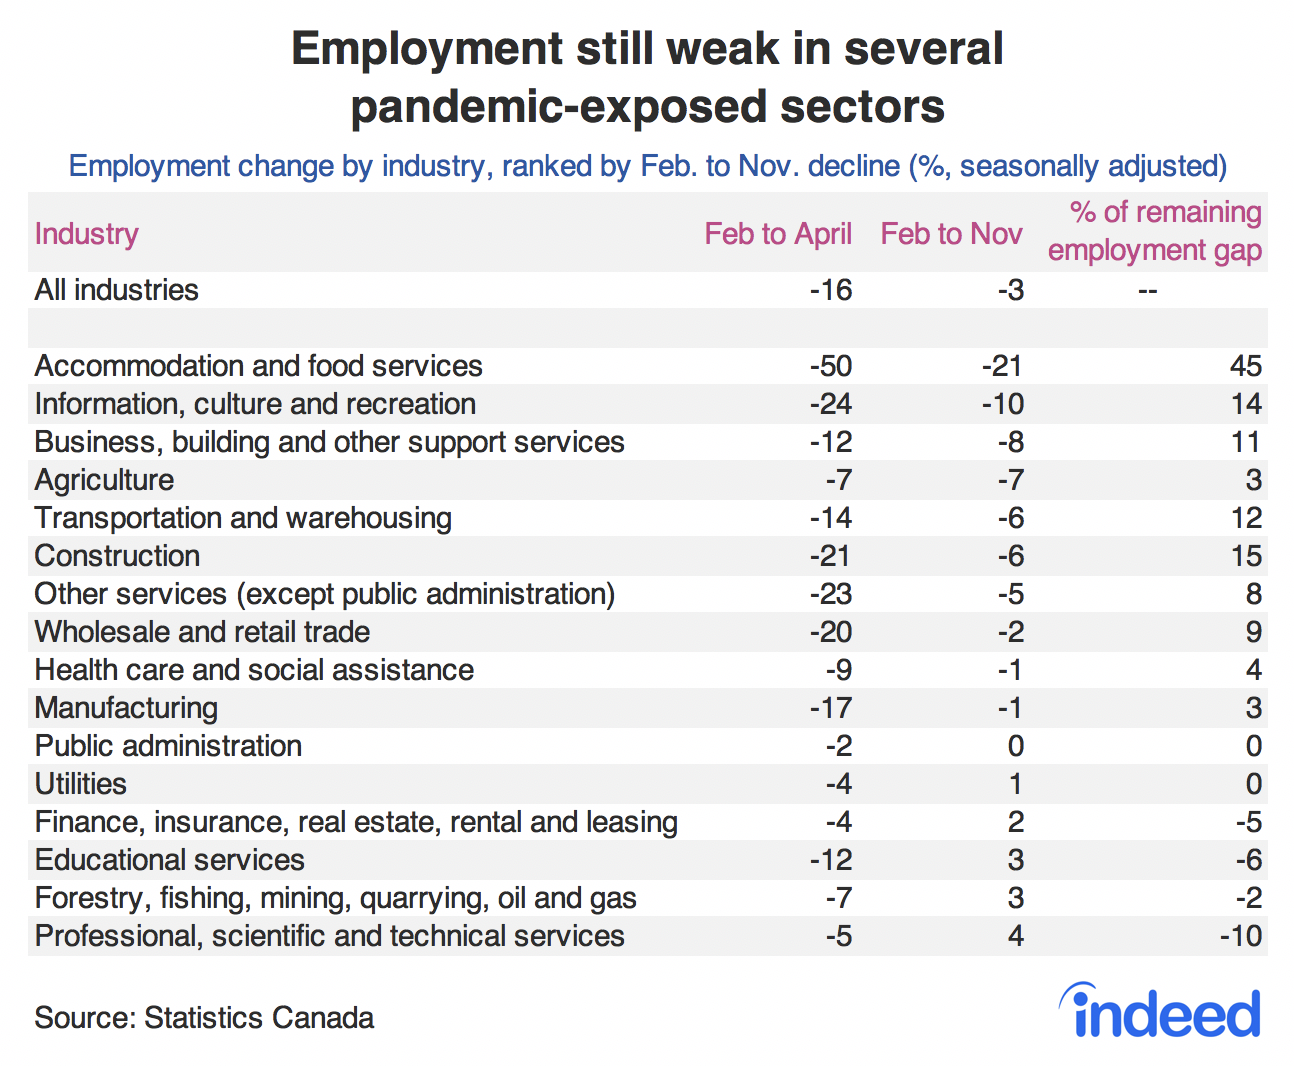 Table showing employment still weak in several pandemic-exposed sector